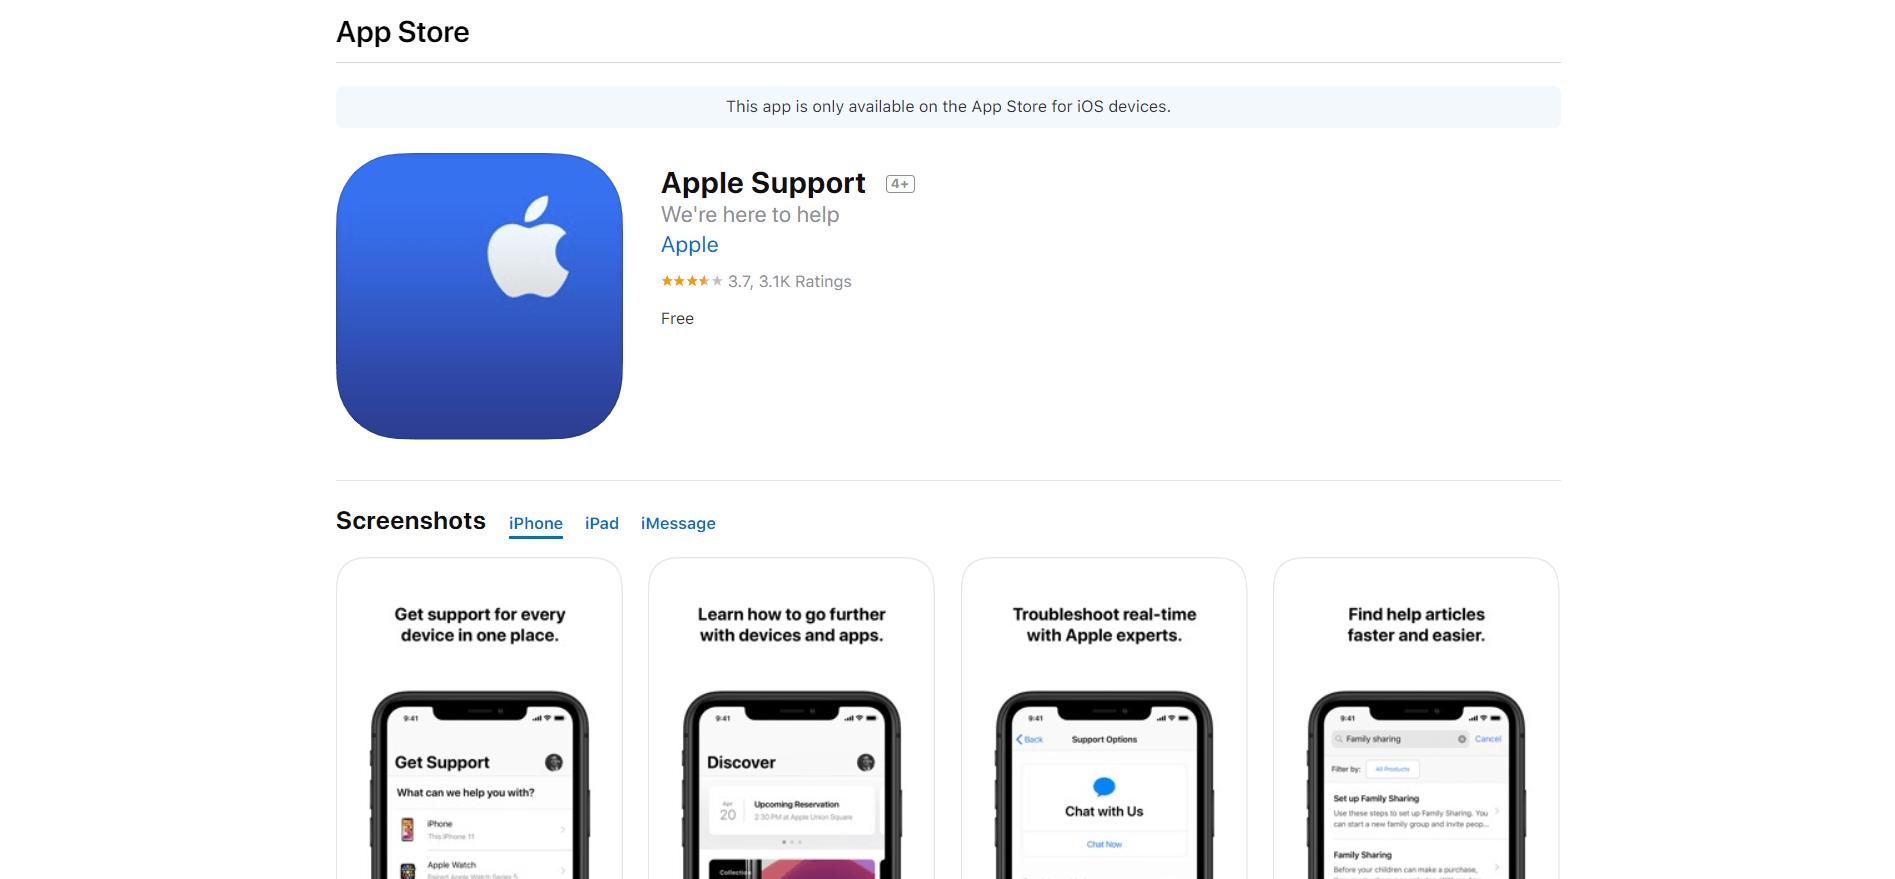 Apple Support app